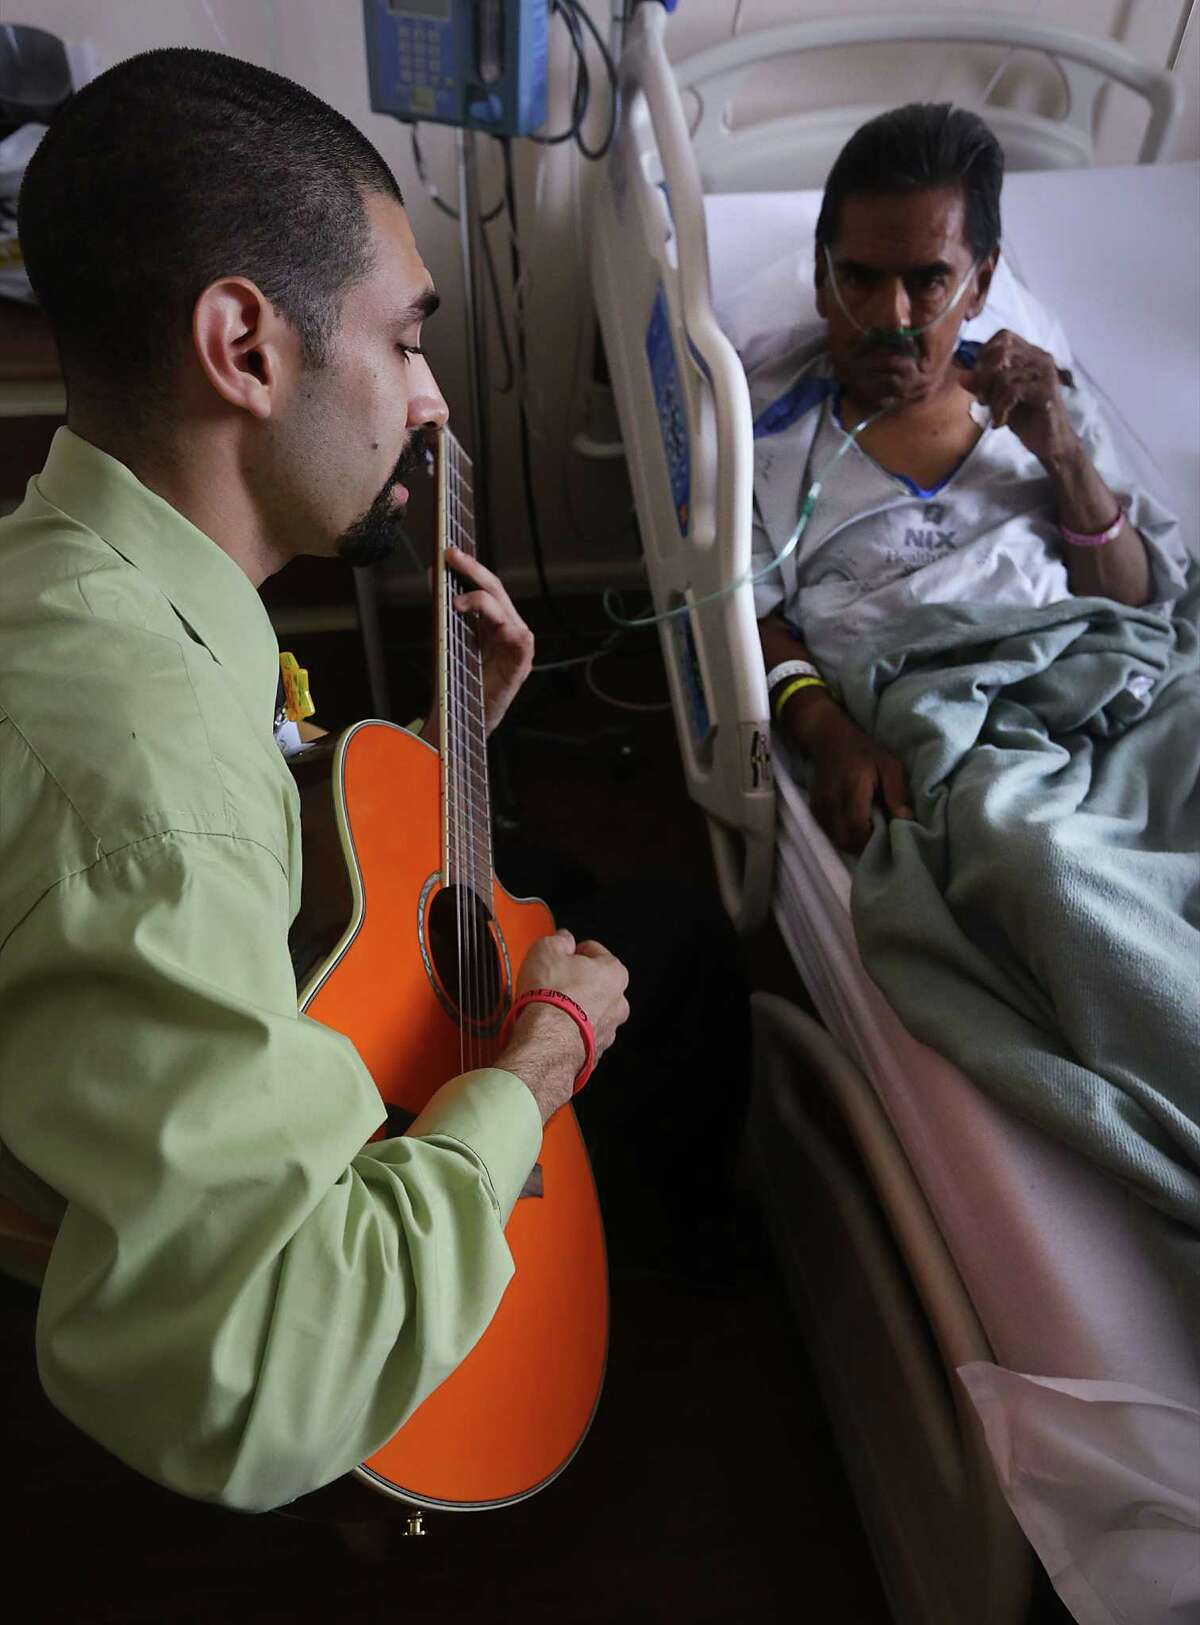 Raul Flores, right, plays his guitar for Manuel Perez at the Nix Health Center during a recent visit. Flores, an aspiring musical therapist, volunteers his time to play for patients at the downtown hospital.